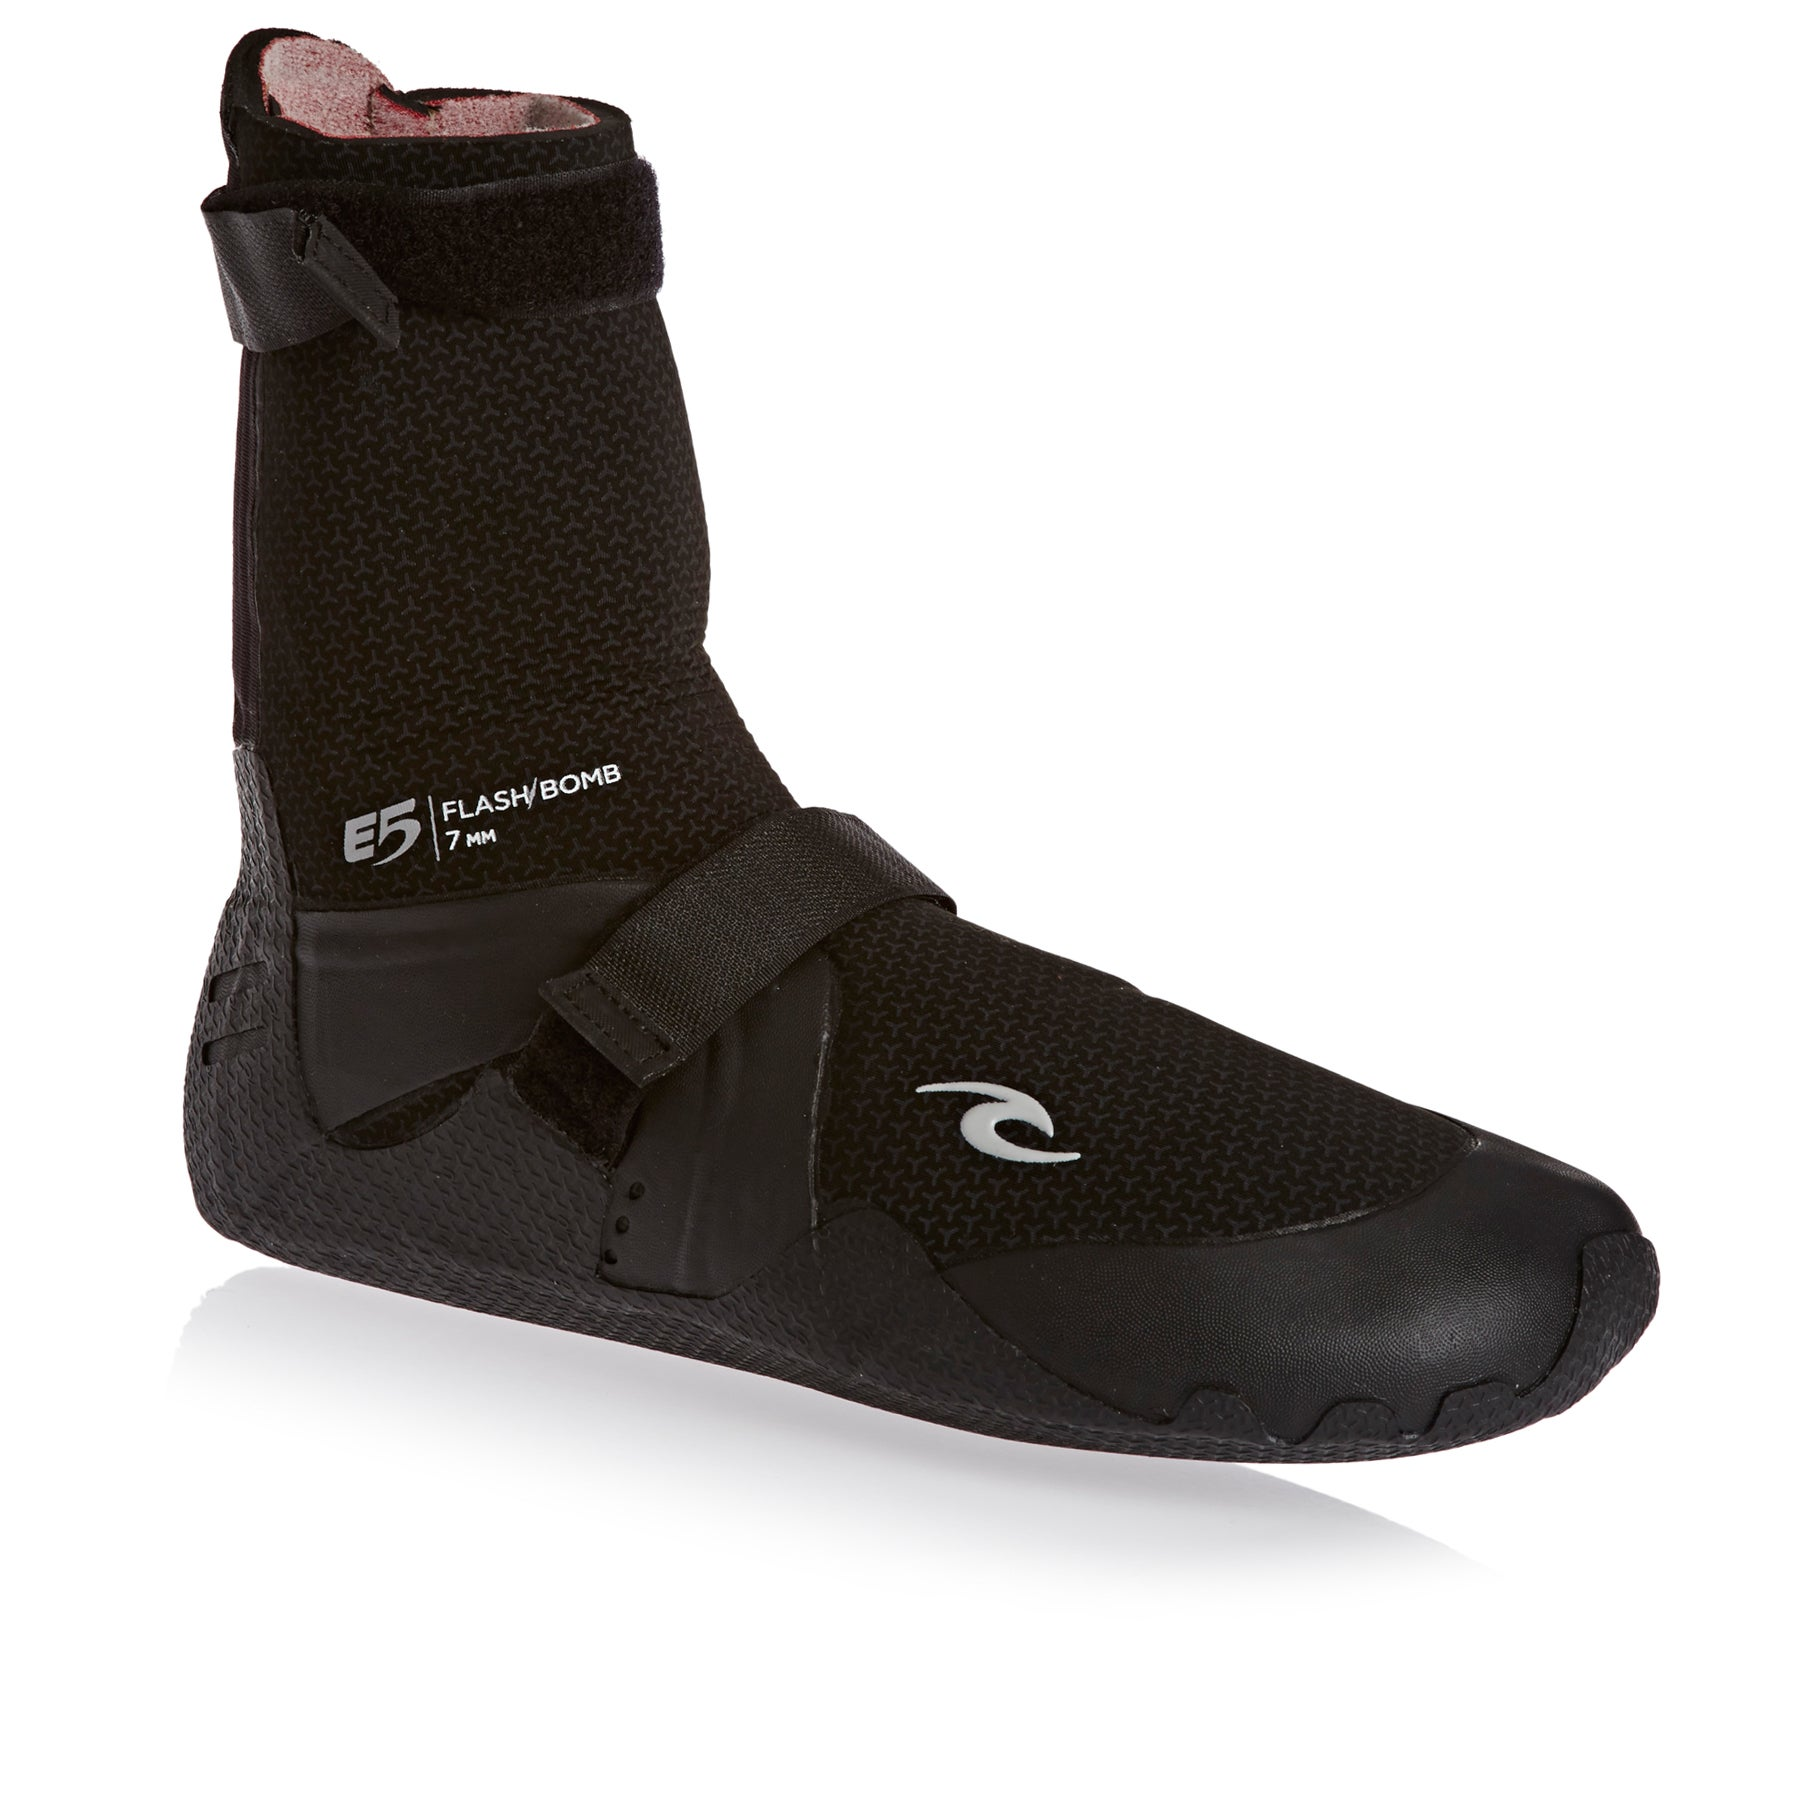 Rip Curl Flashbomb 7mm 2018 Round Toe Neoprenstiefel - Black